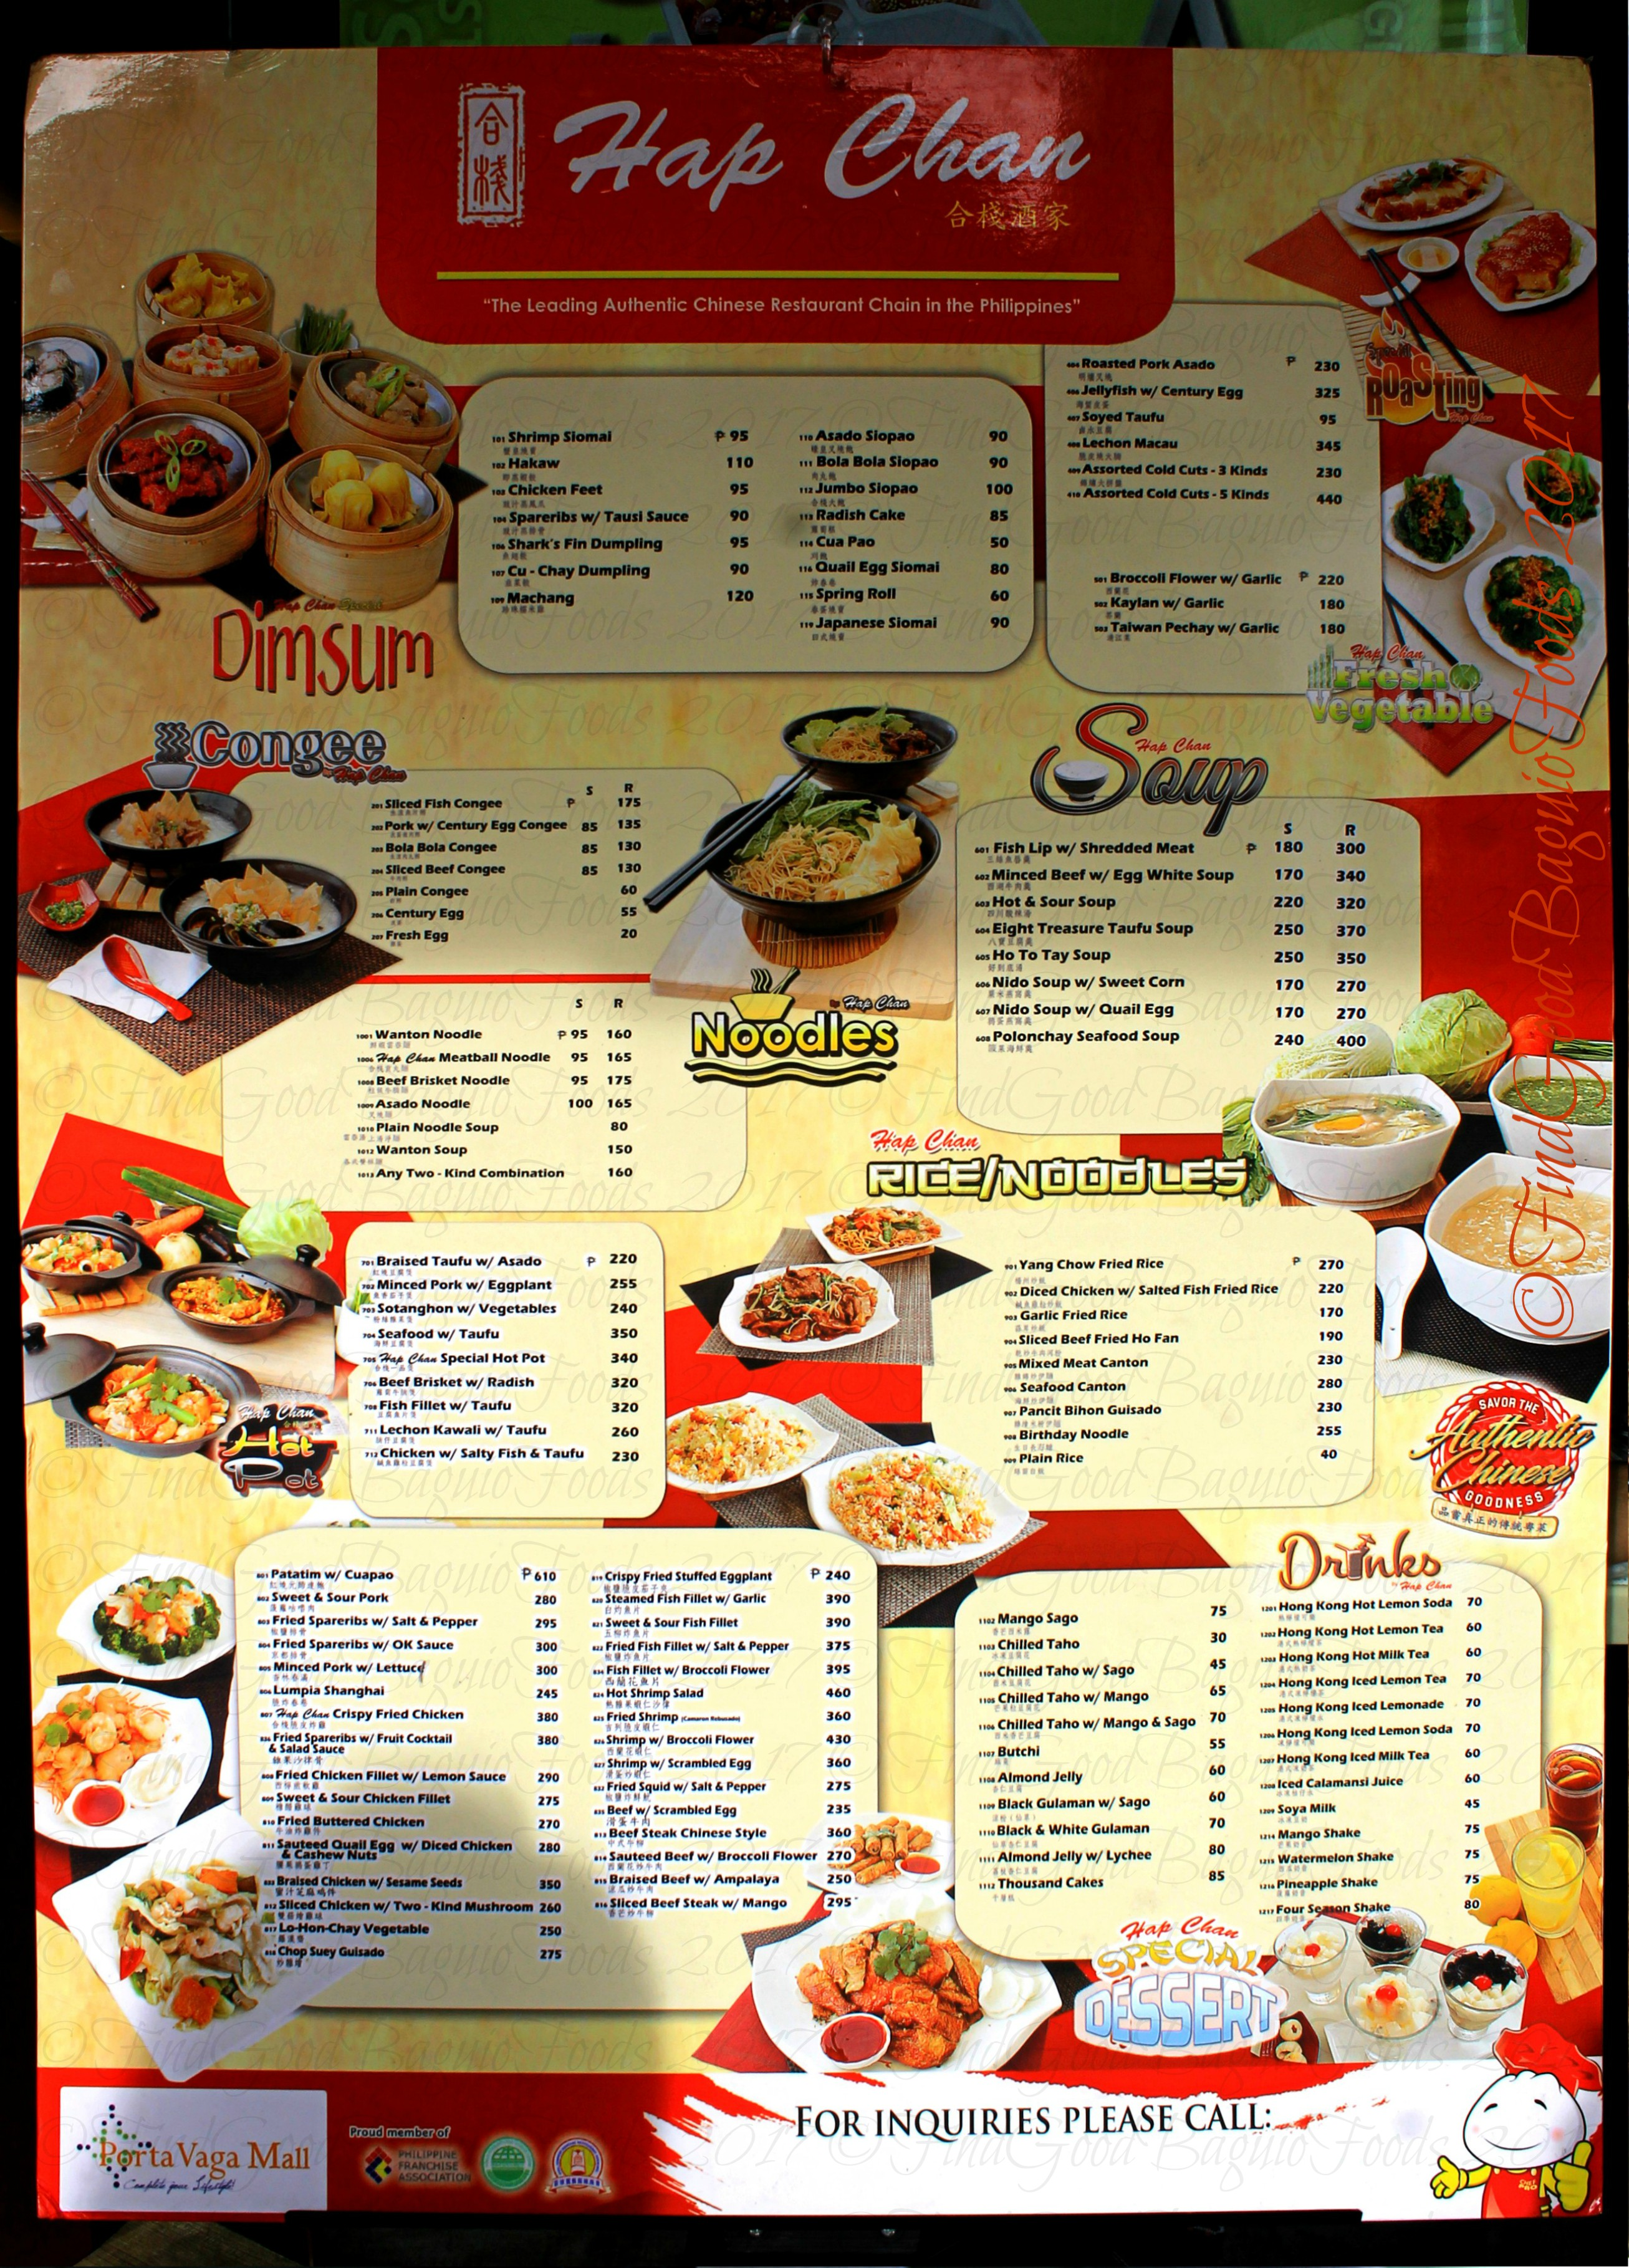 Food 411 At 2600 X Marks The Spot For Good Baguio Foods